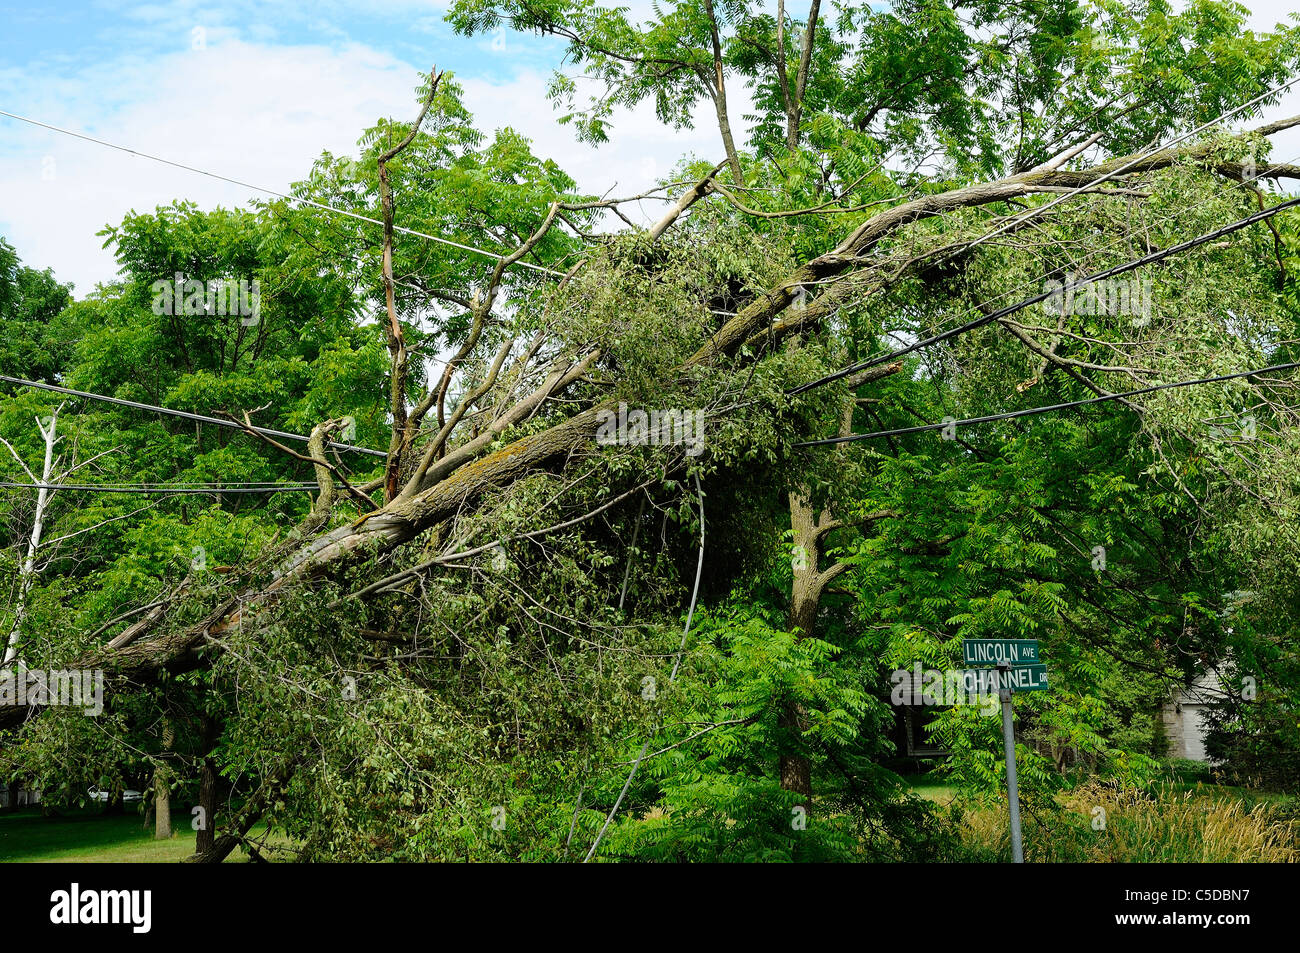 Storm Damage Telephone Pole Stockfotos & Storm Damage Telephone Pole ...